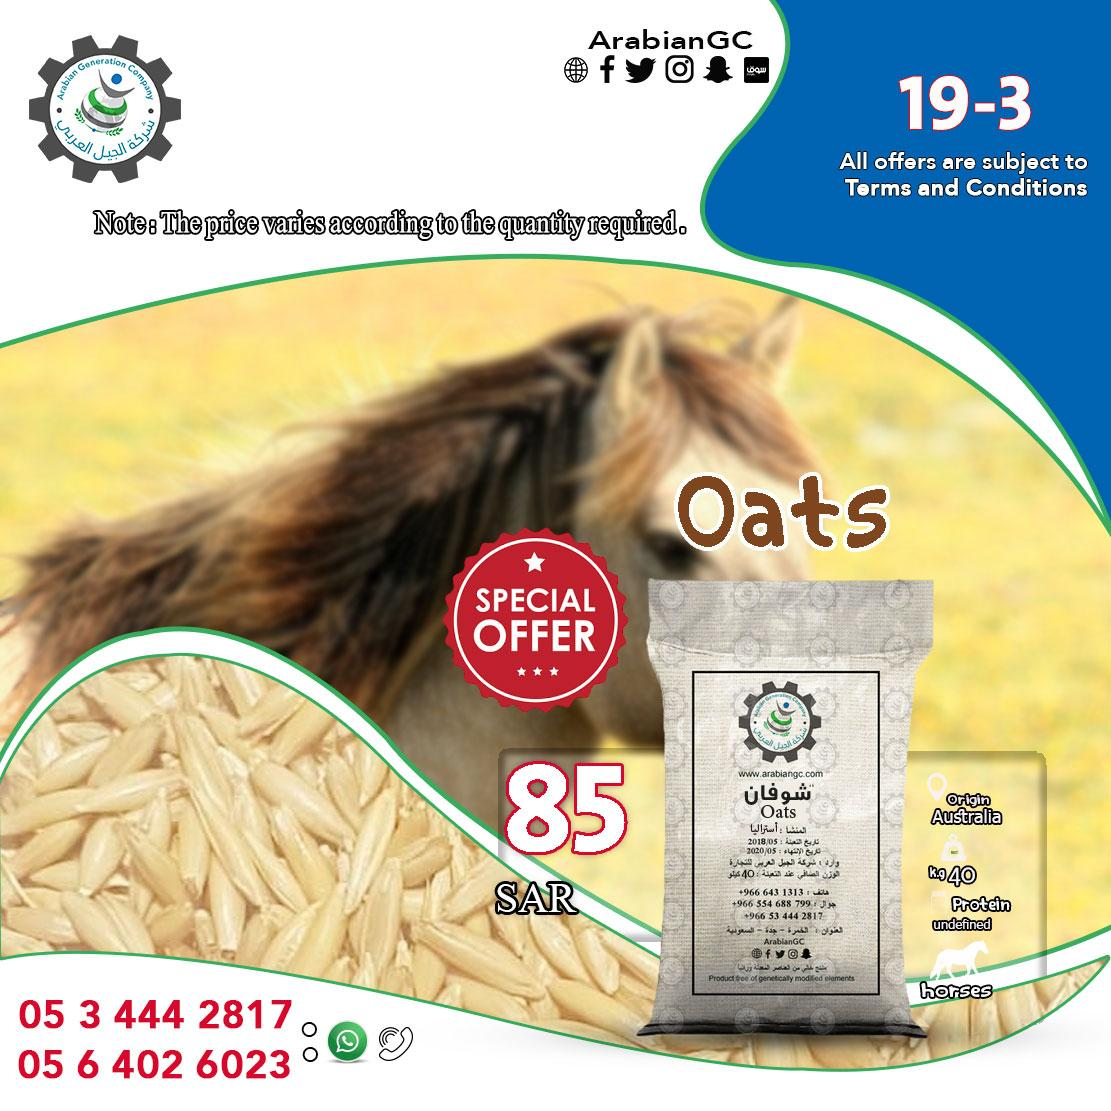 Special offer Oats from Arabian d.php?hash=CTP464BFB